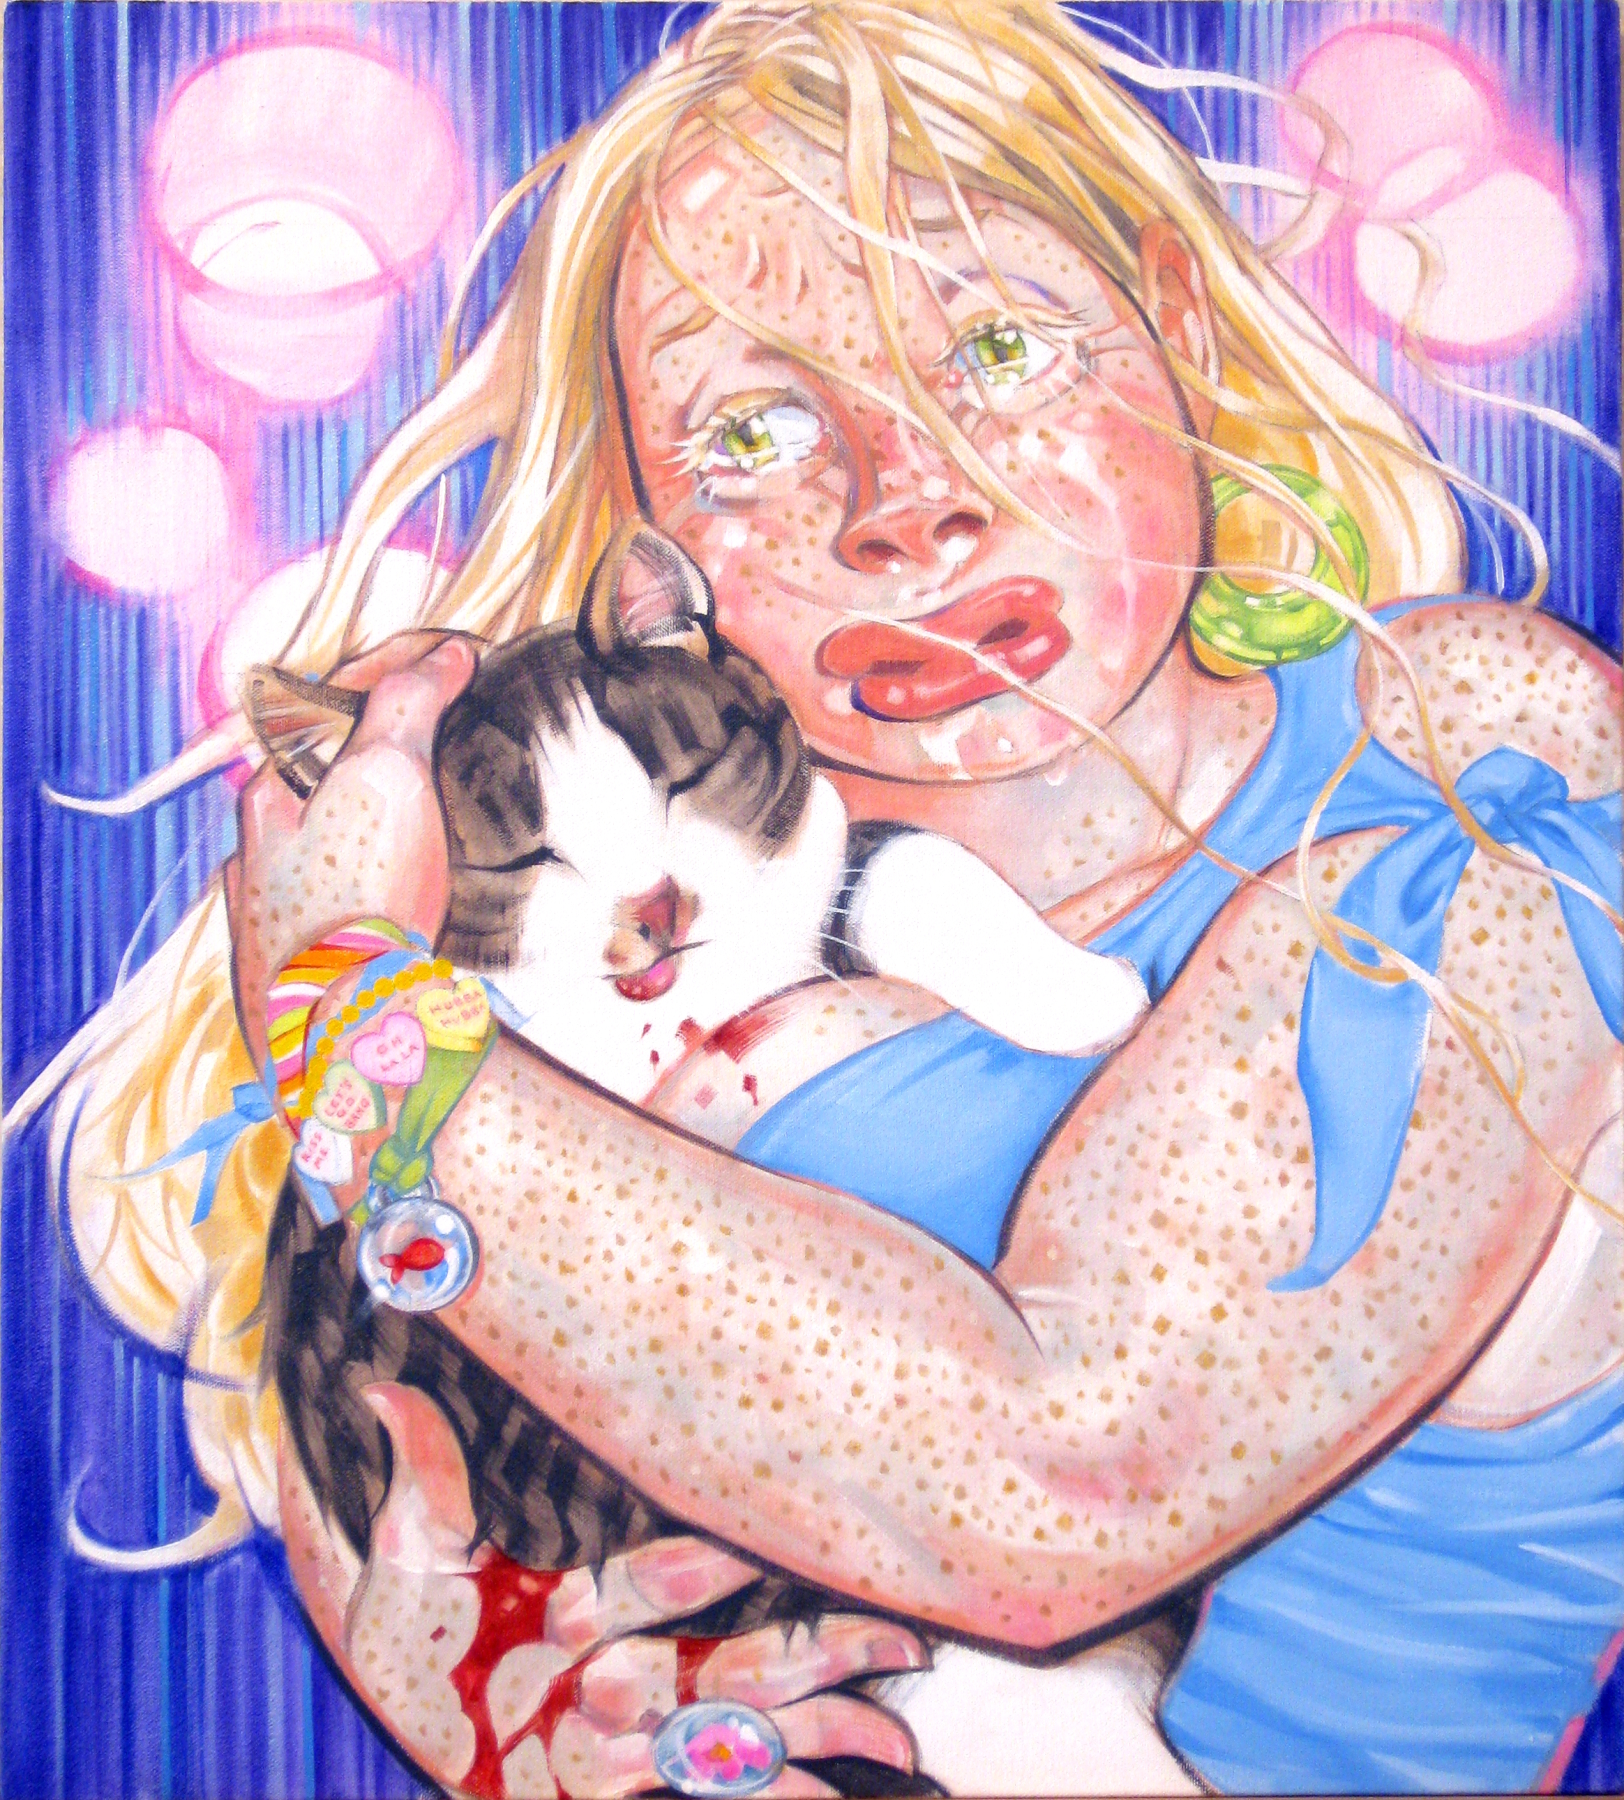 All Cats and Dogs Go to Heaven, 2009, oil on canvas, 22.5 x 20.5 inches, by Taiyo la Paix, courtesy of Carl Granados